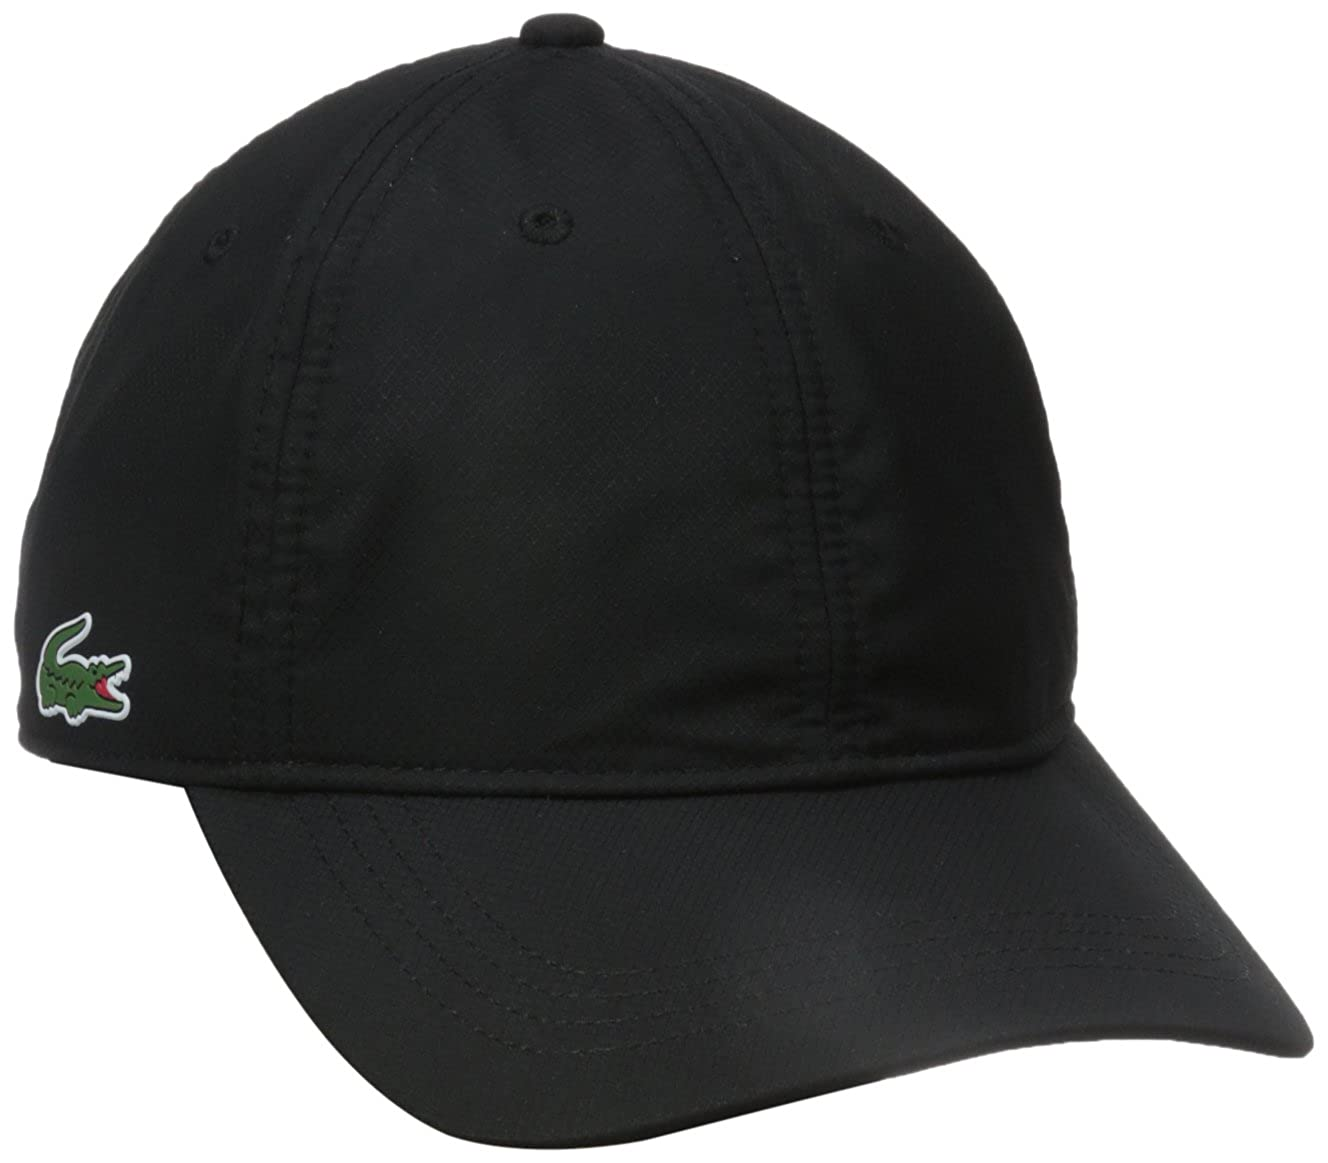 f851470b21194 Amazon.com  Lacoste Men s Sport Taffeta Cap